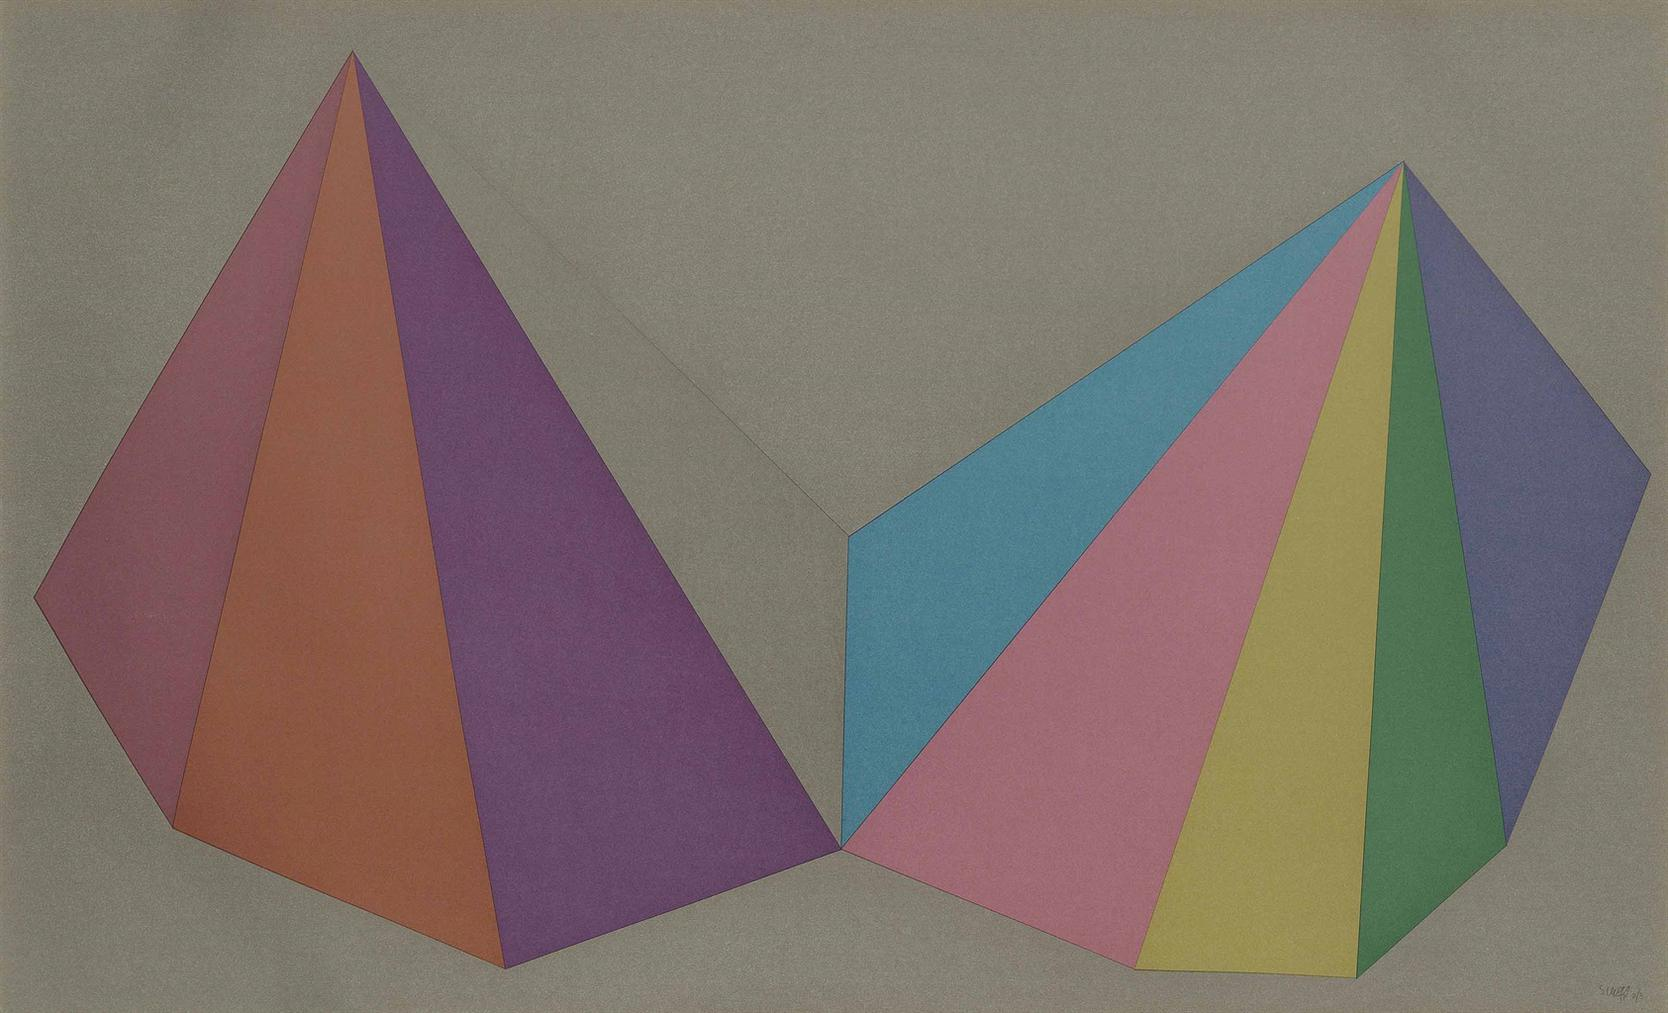 Sol LeWitt-Plate 4, From: Two Asymmetrical Pyramids-1986